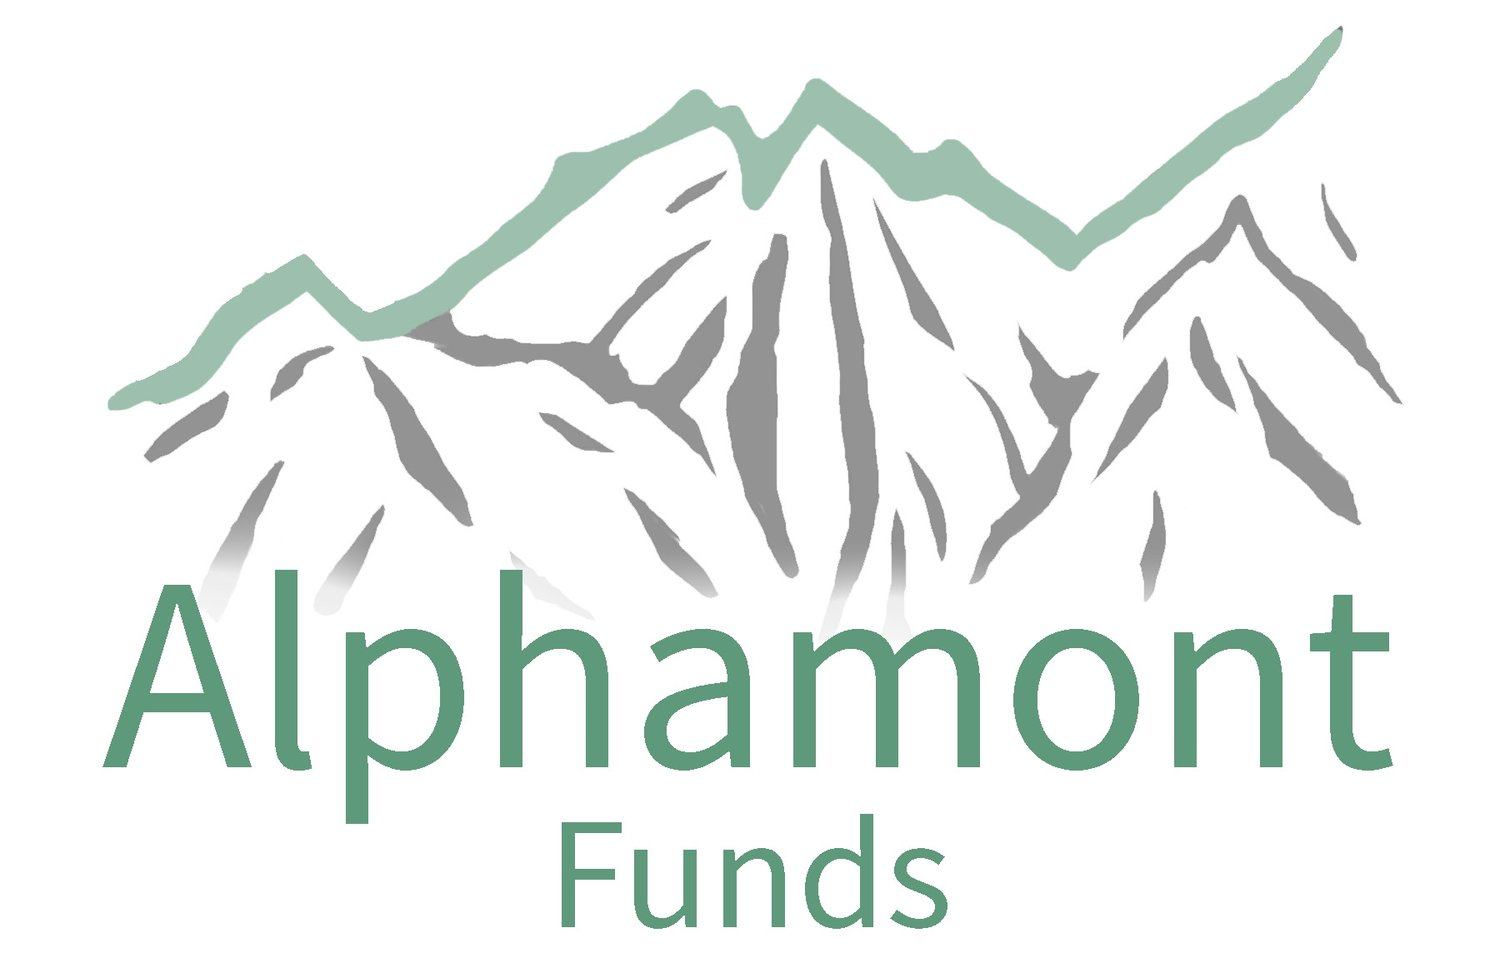 Alphamont Funds